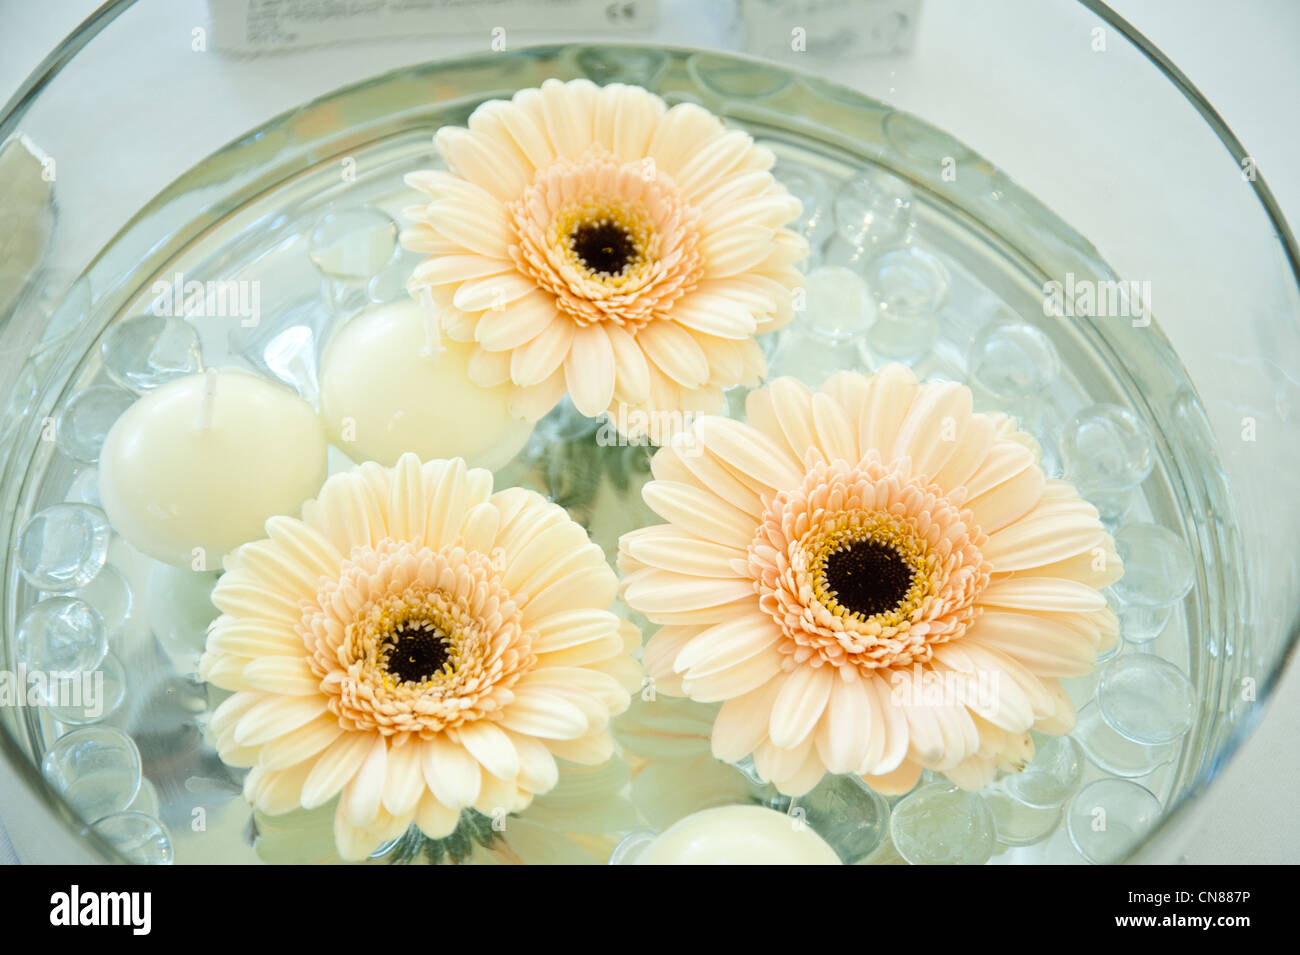 A Wedding Table Decoration Floating Flowers And Candles Stock Photo